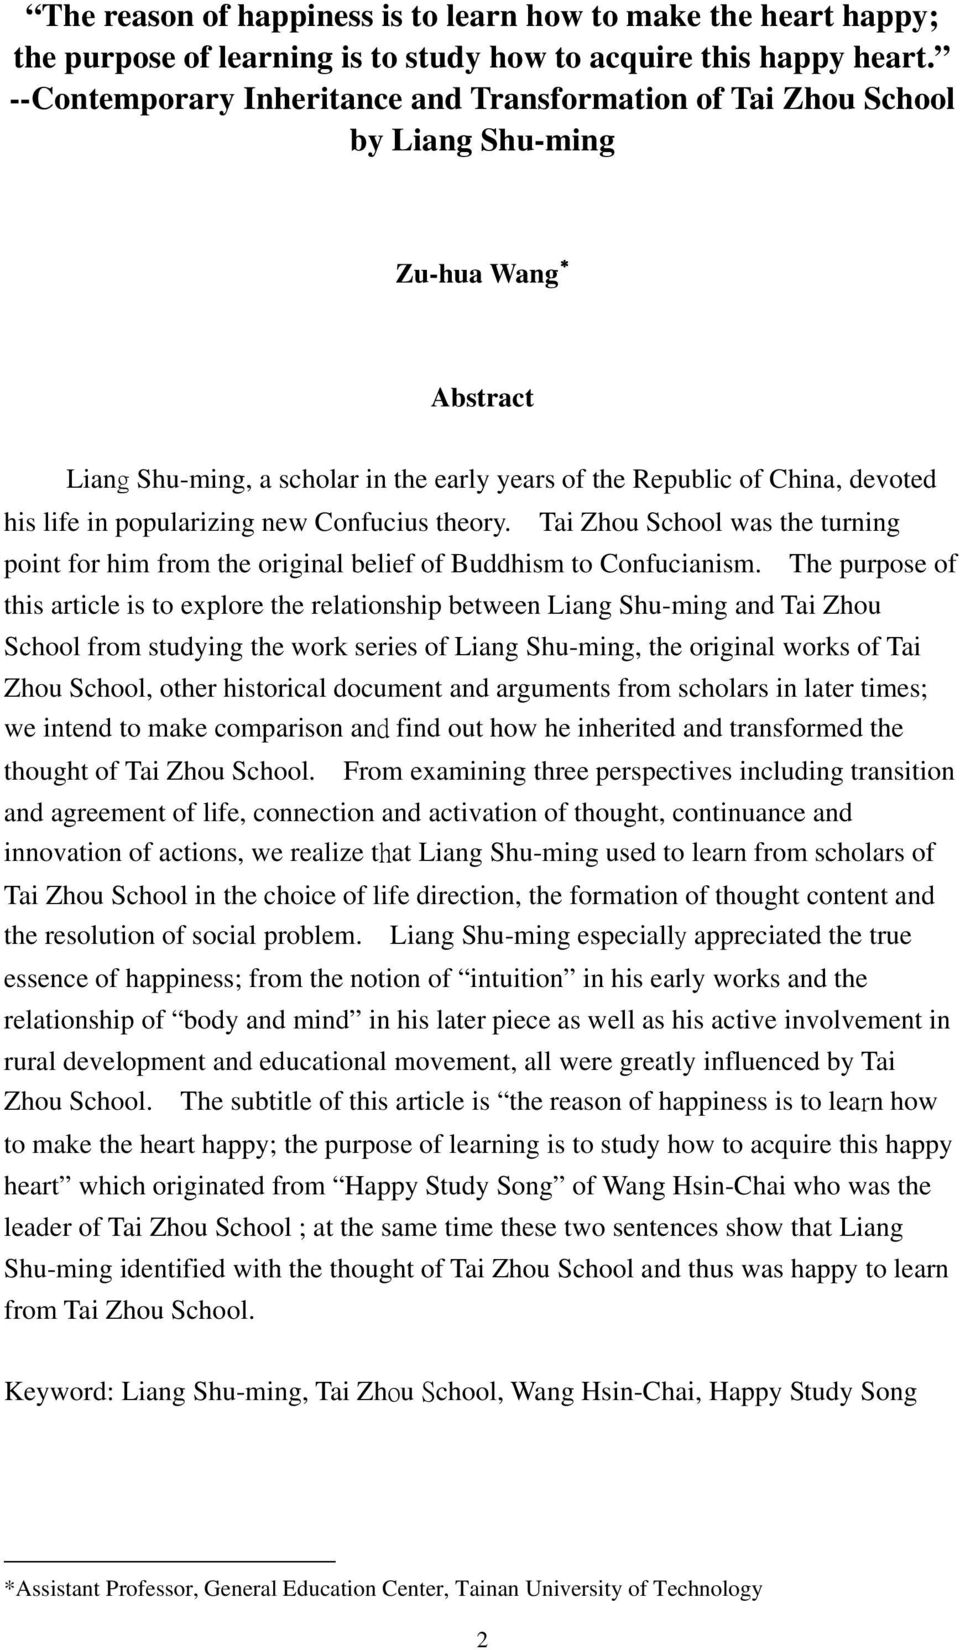 popularizing new Confucius theory. Tai Zhou School was the turning point for him from the original belief of Buddhism to Confucianism.